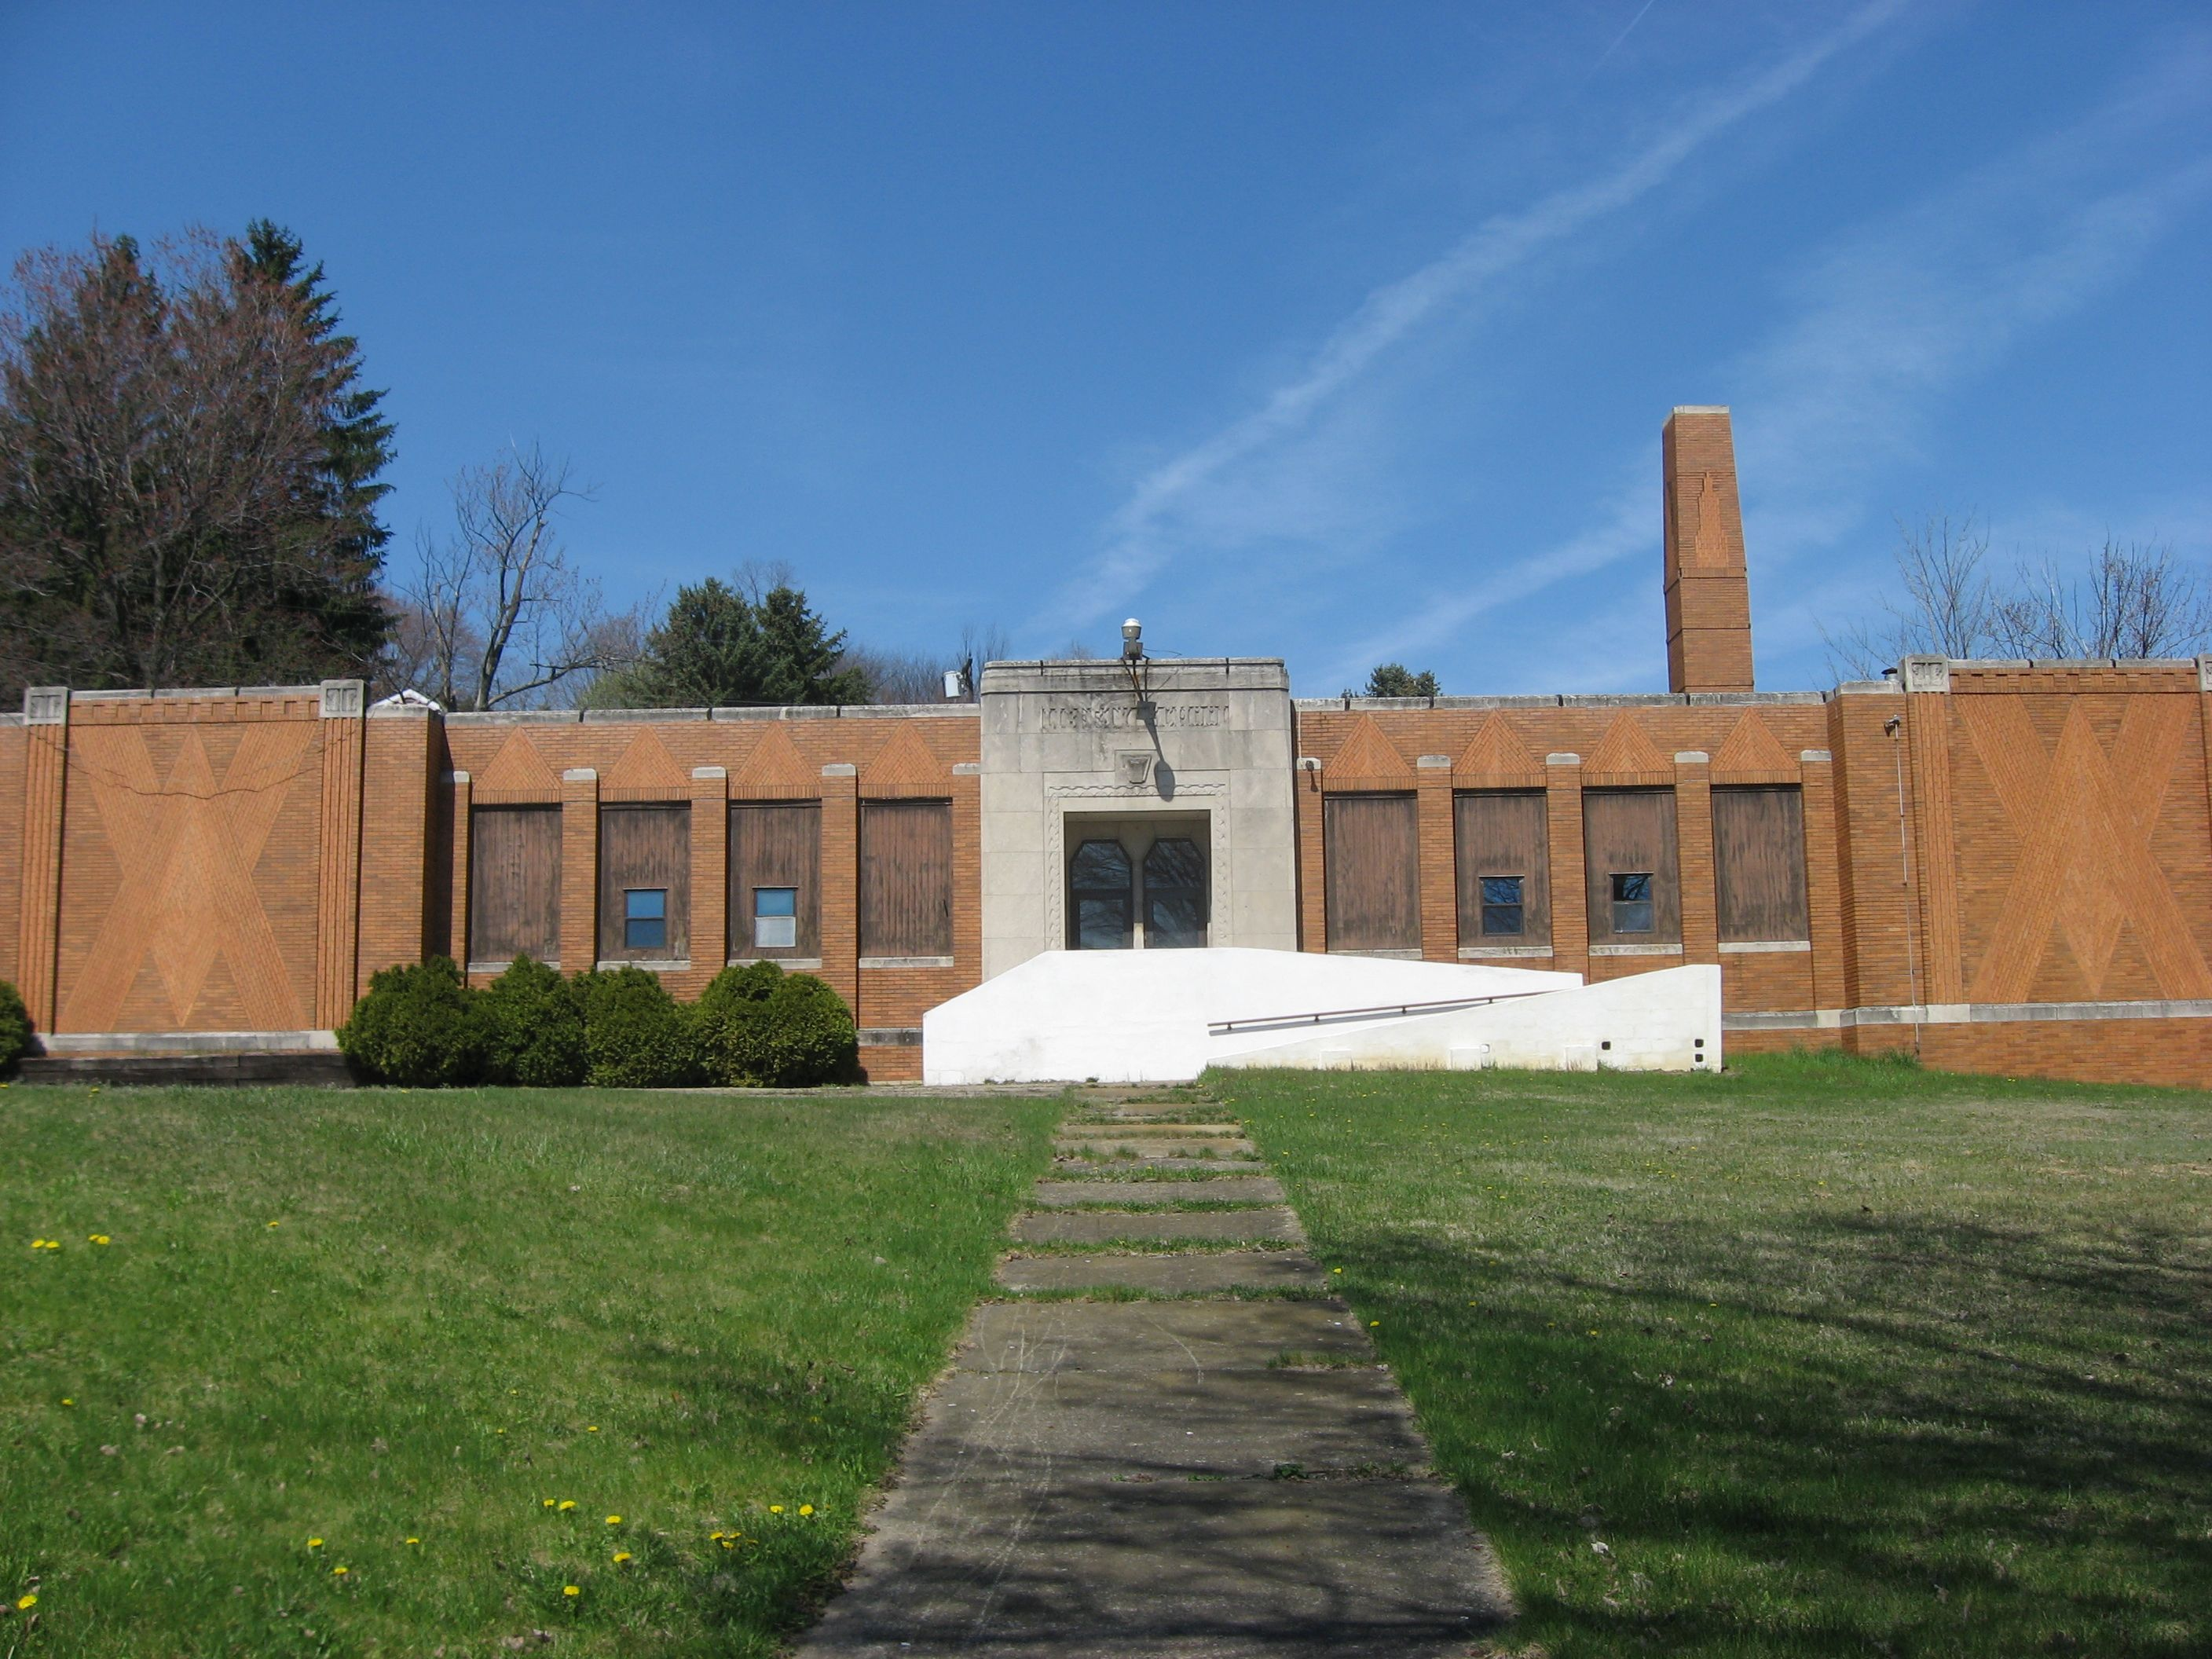 Former Liberty School in central West Mayfield Beaver Falls PA